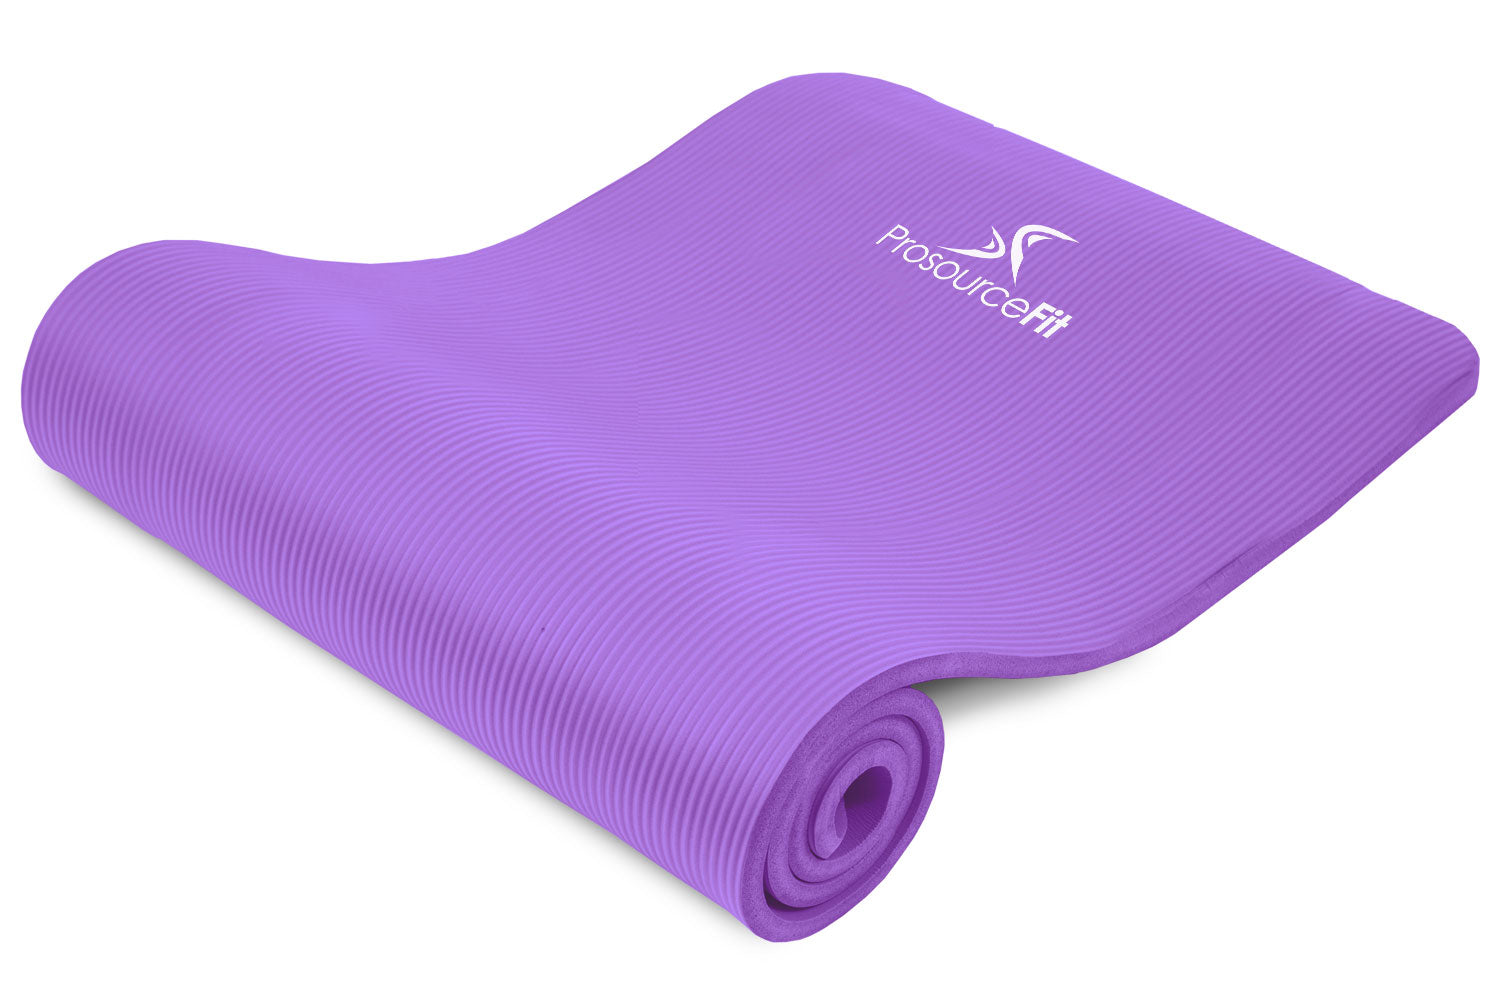 Extra Thick Yoga And Pilates Mat 1 2 Inch Prosourcefit